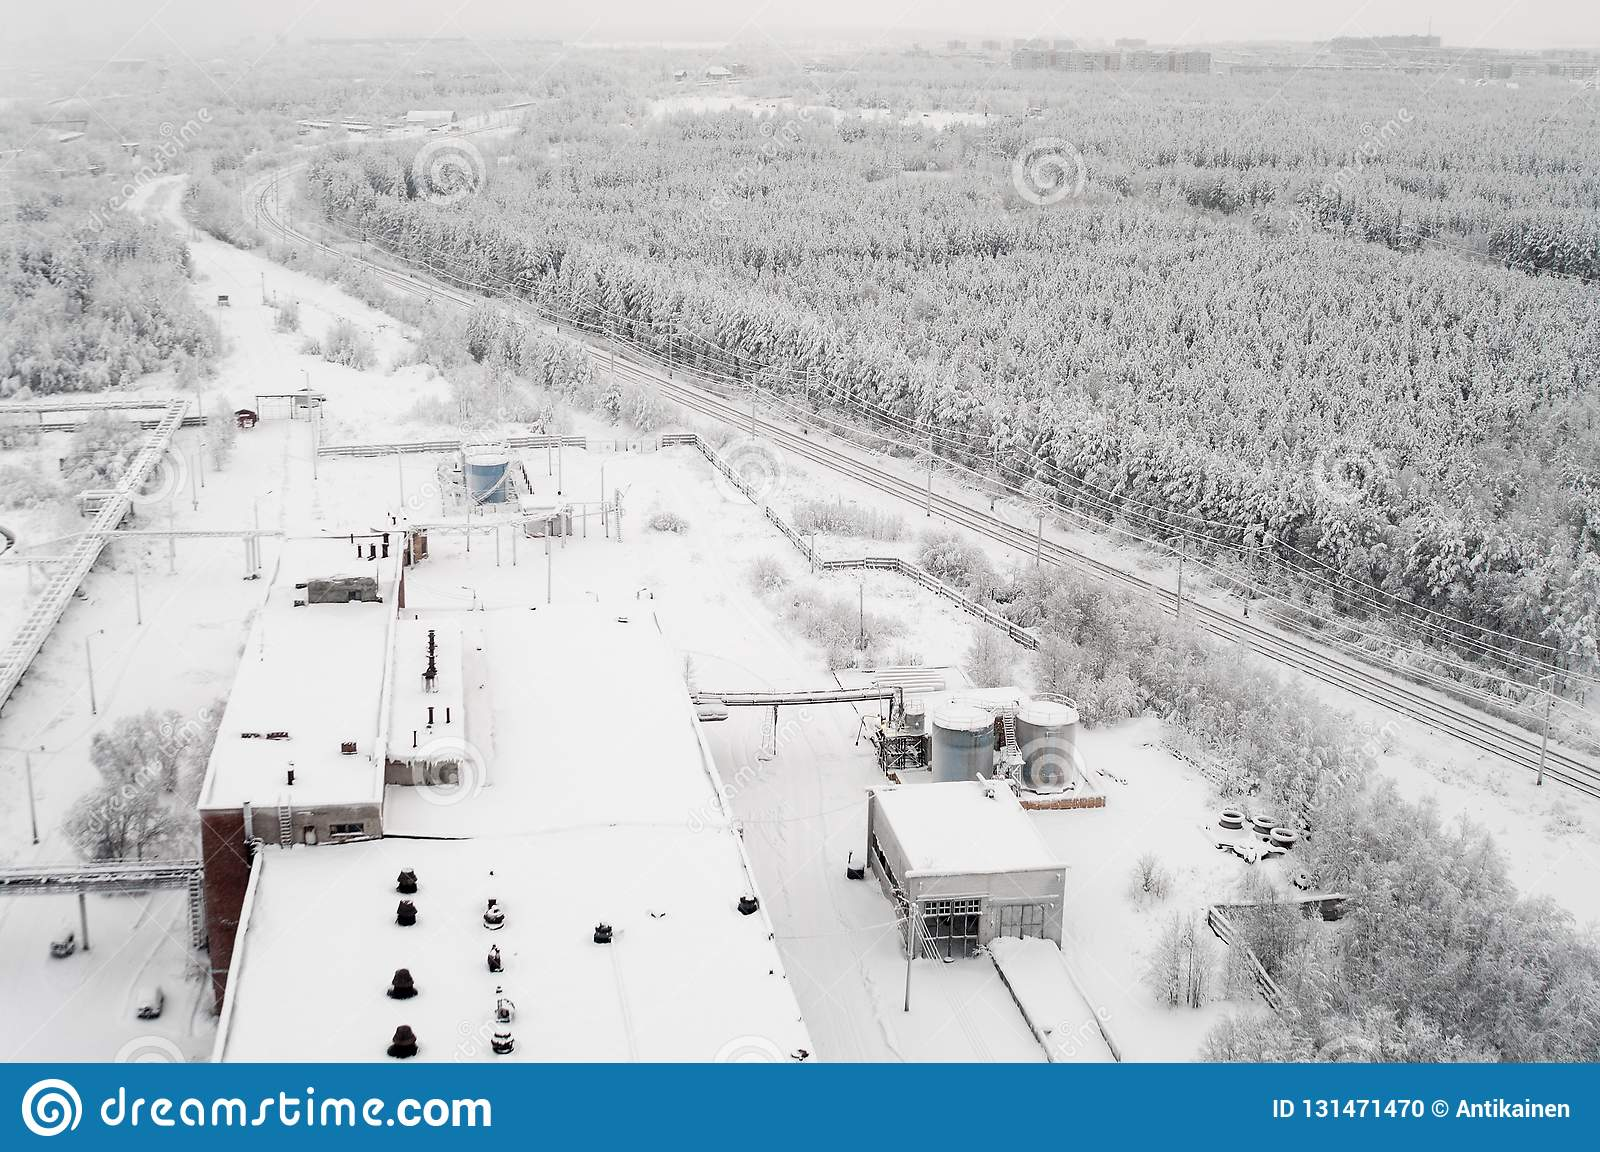 Top View At Wintry Rail Road In Evergreen Forest With Snow Capped